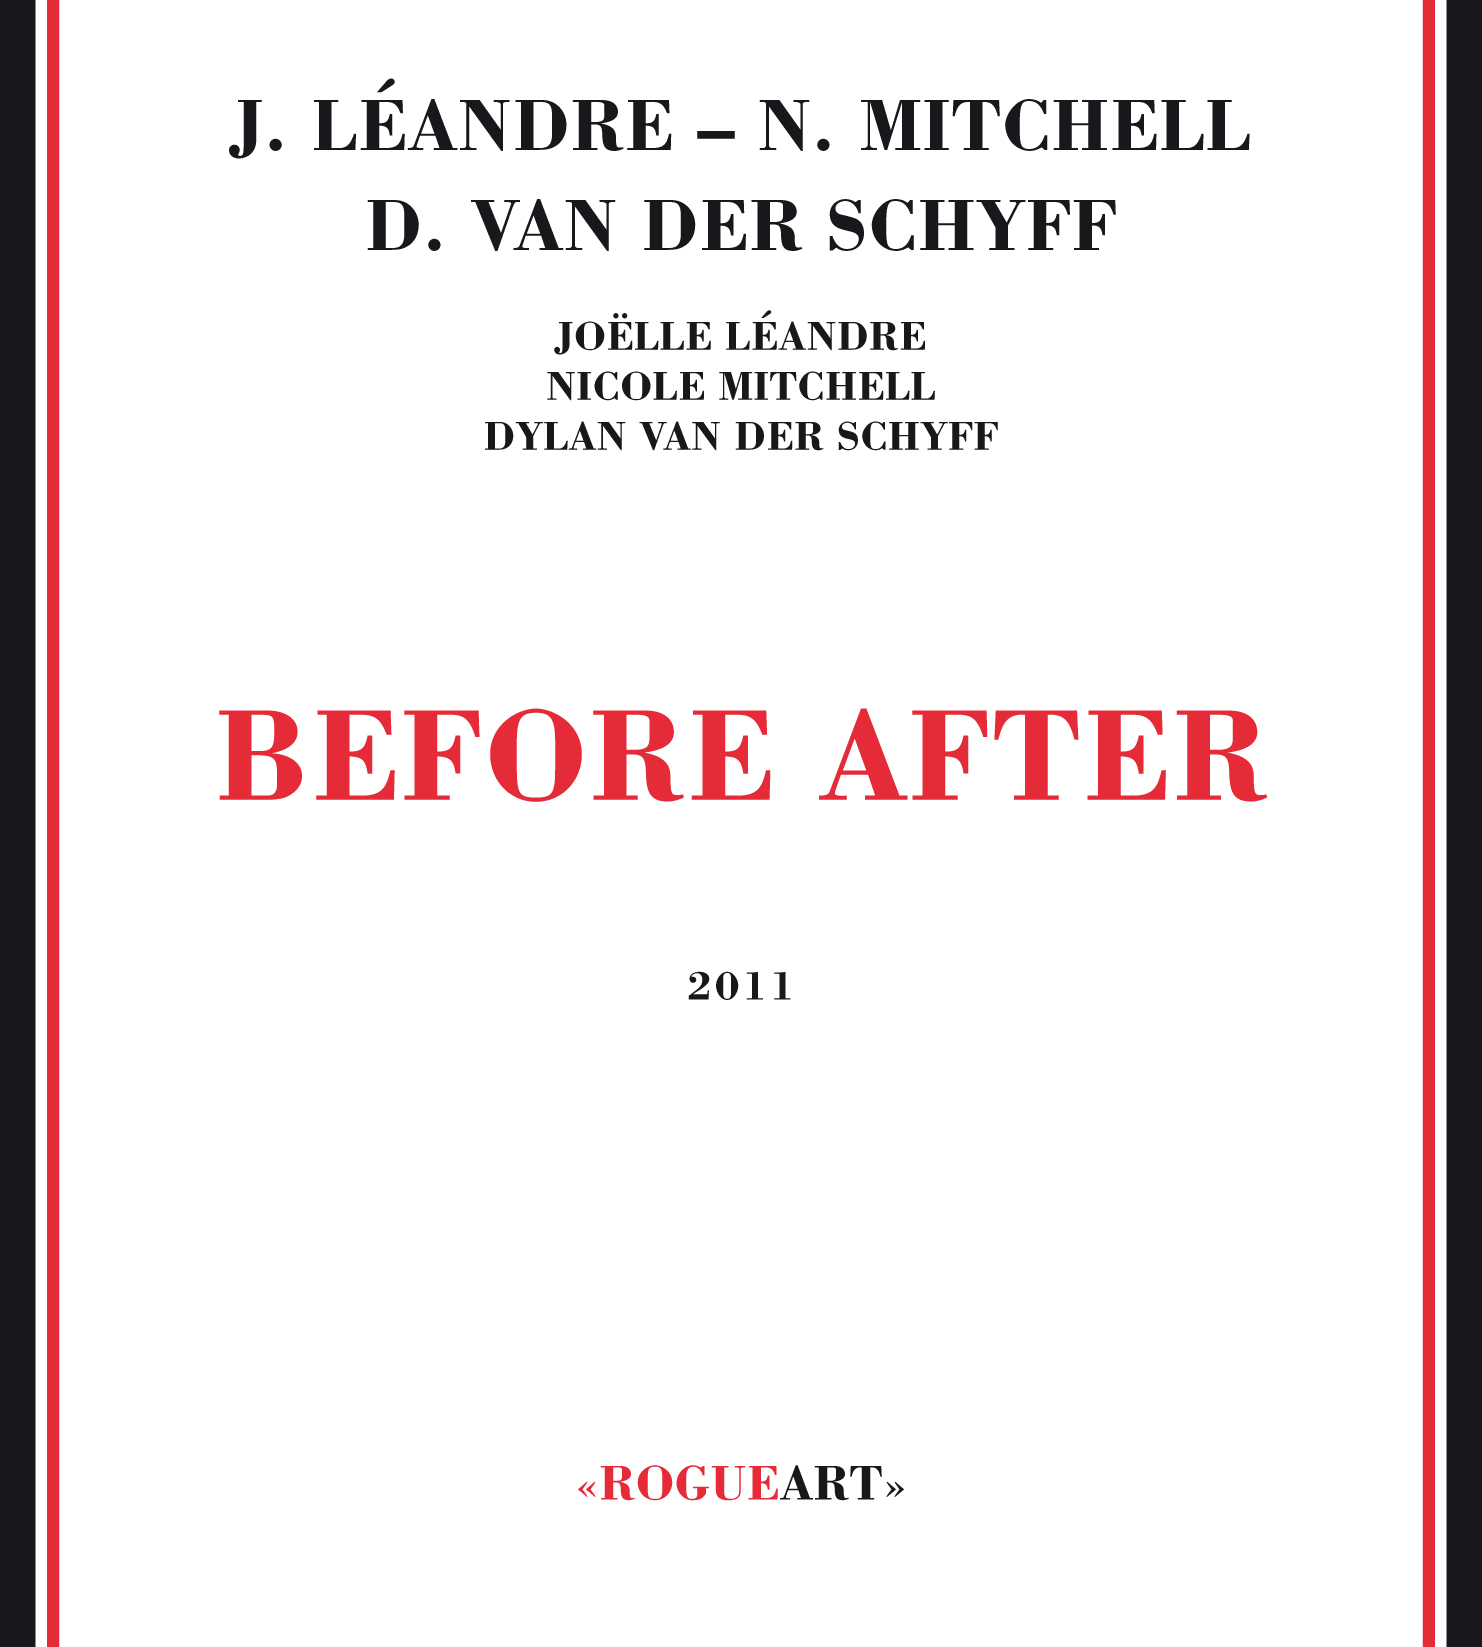 Front cover of the album BEFORE AFTER